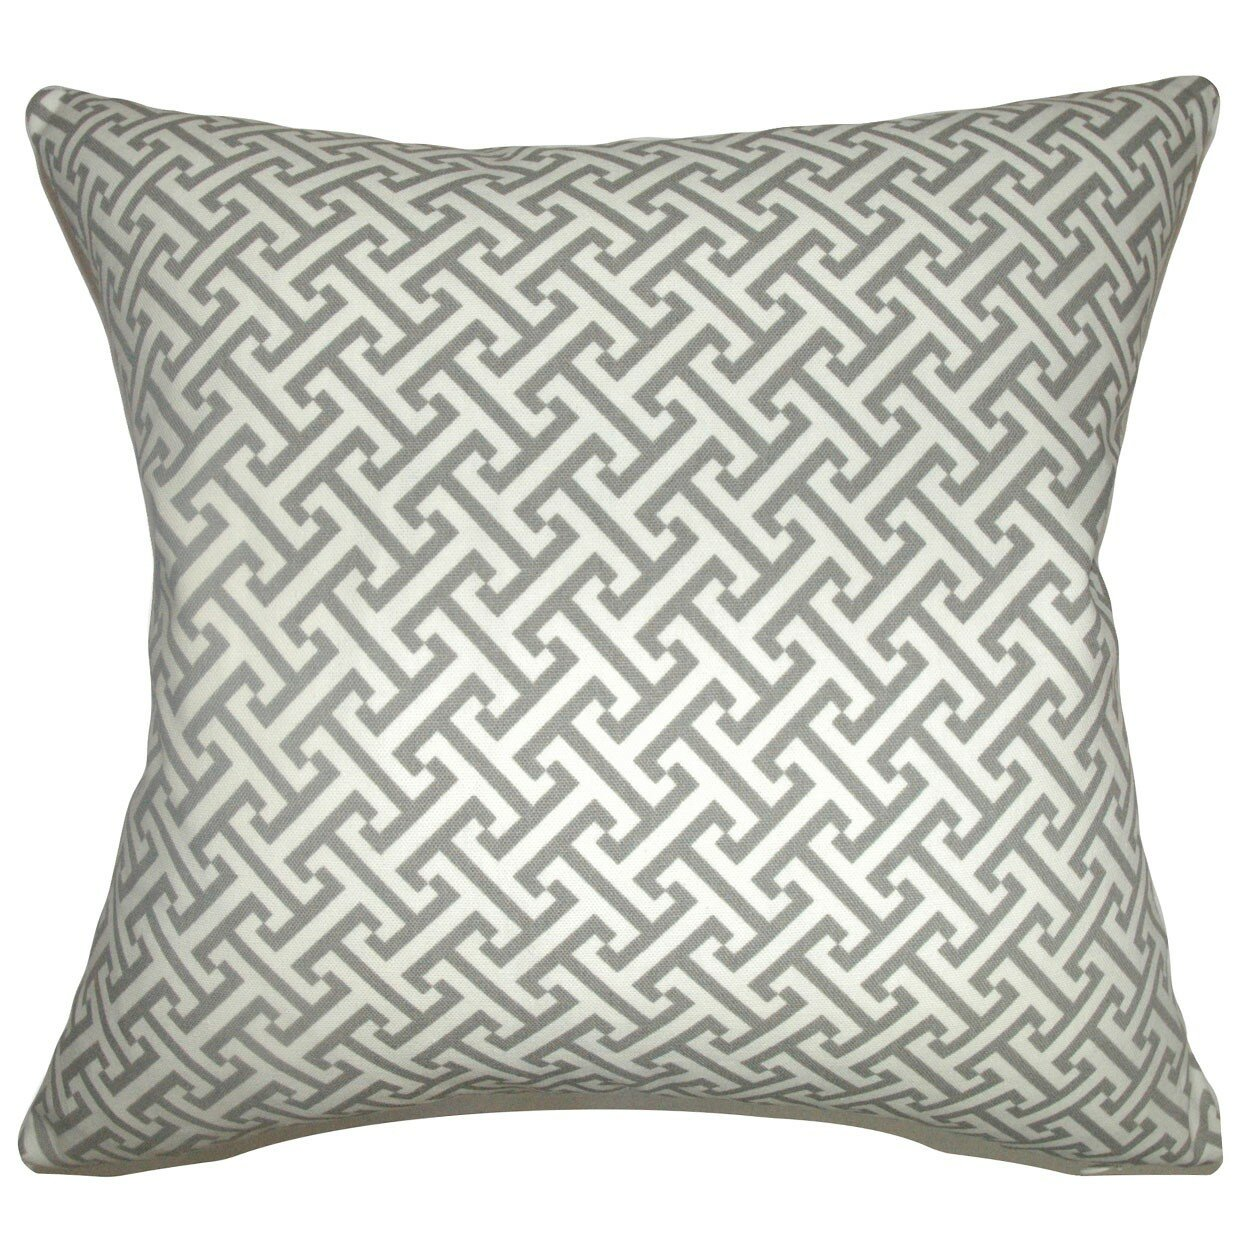 The Pillow Collection Quentin Cotton Throw Pillow  : The Pillow Collection Quentin Cotton Pillow P18 D 42227 from www.wayfair.com size 1240 x 1240 jpeg 350kB